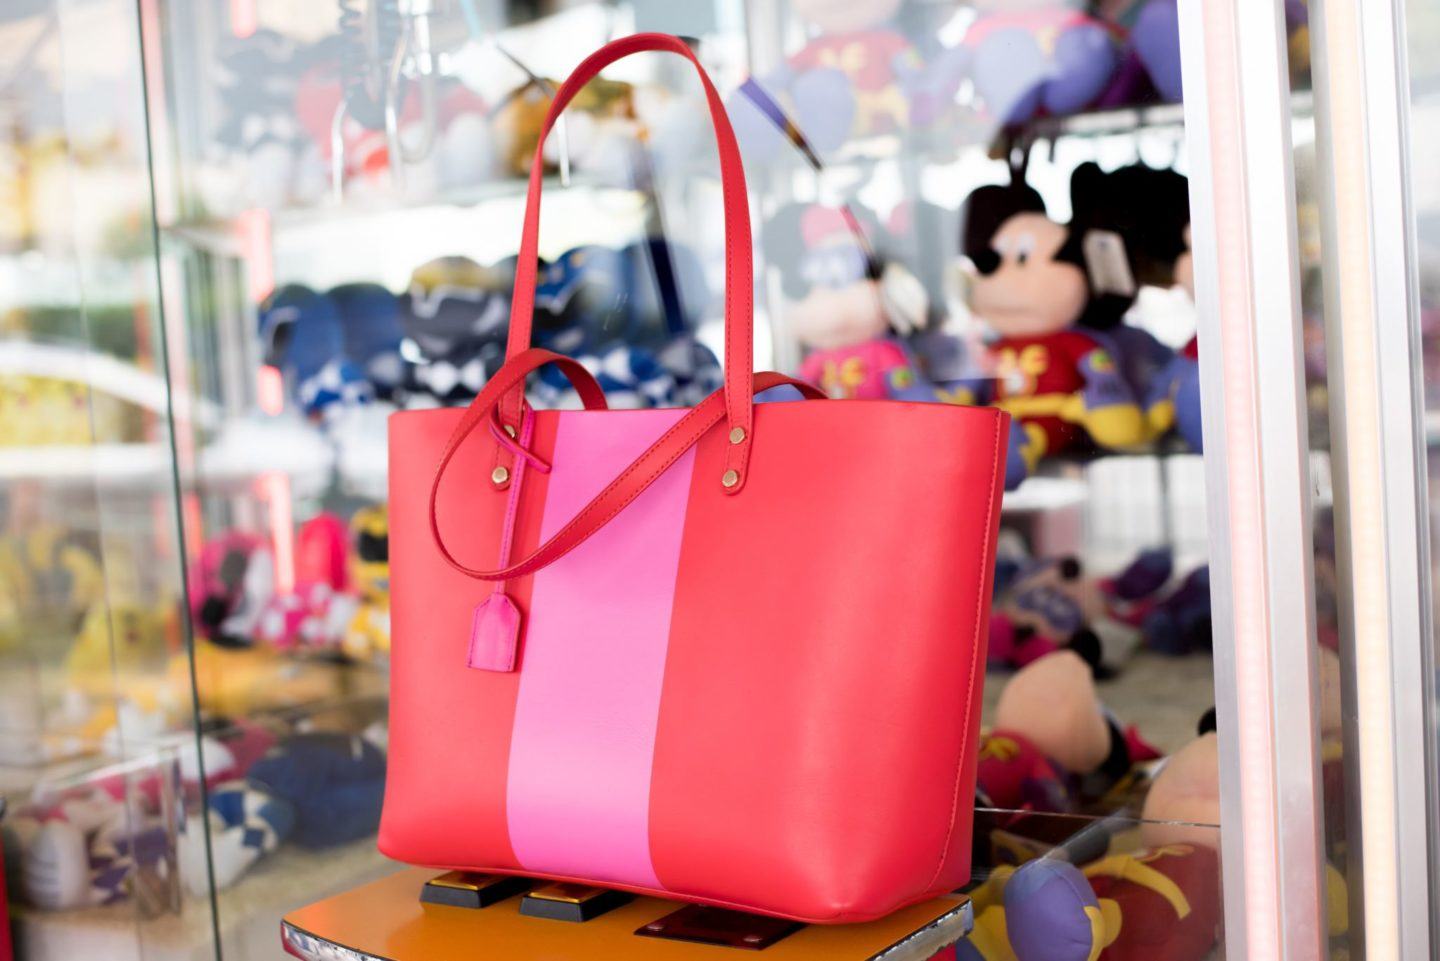 boden tote bag pink red luxe shoppyer leather